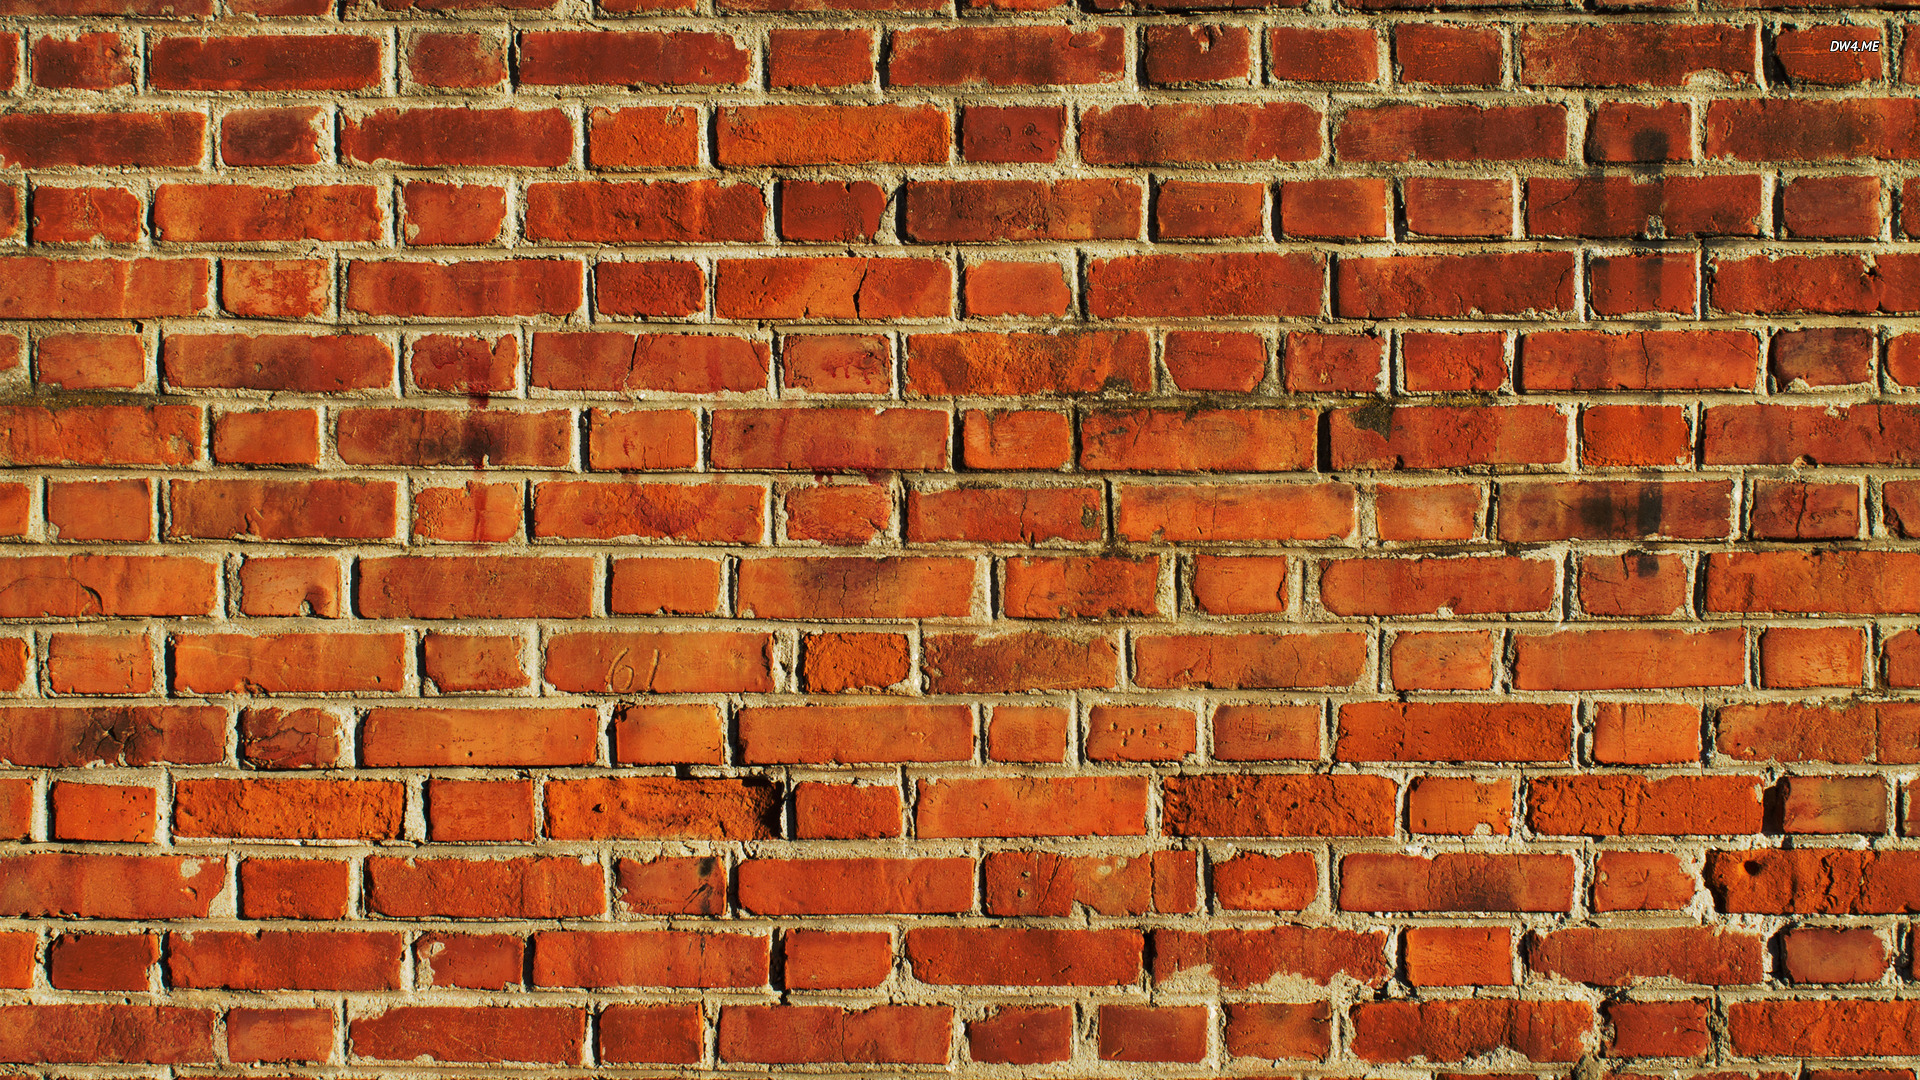 brick wall wallpaper photography wallpapers brick wall wallpaper 1920x1080